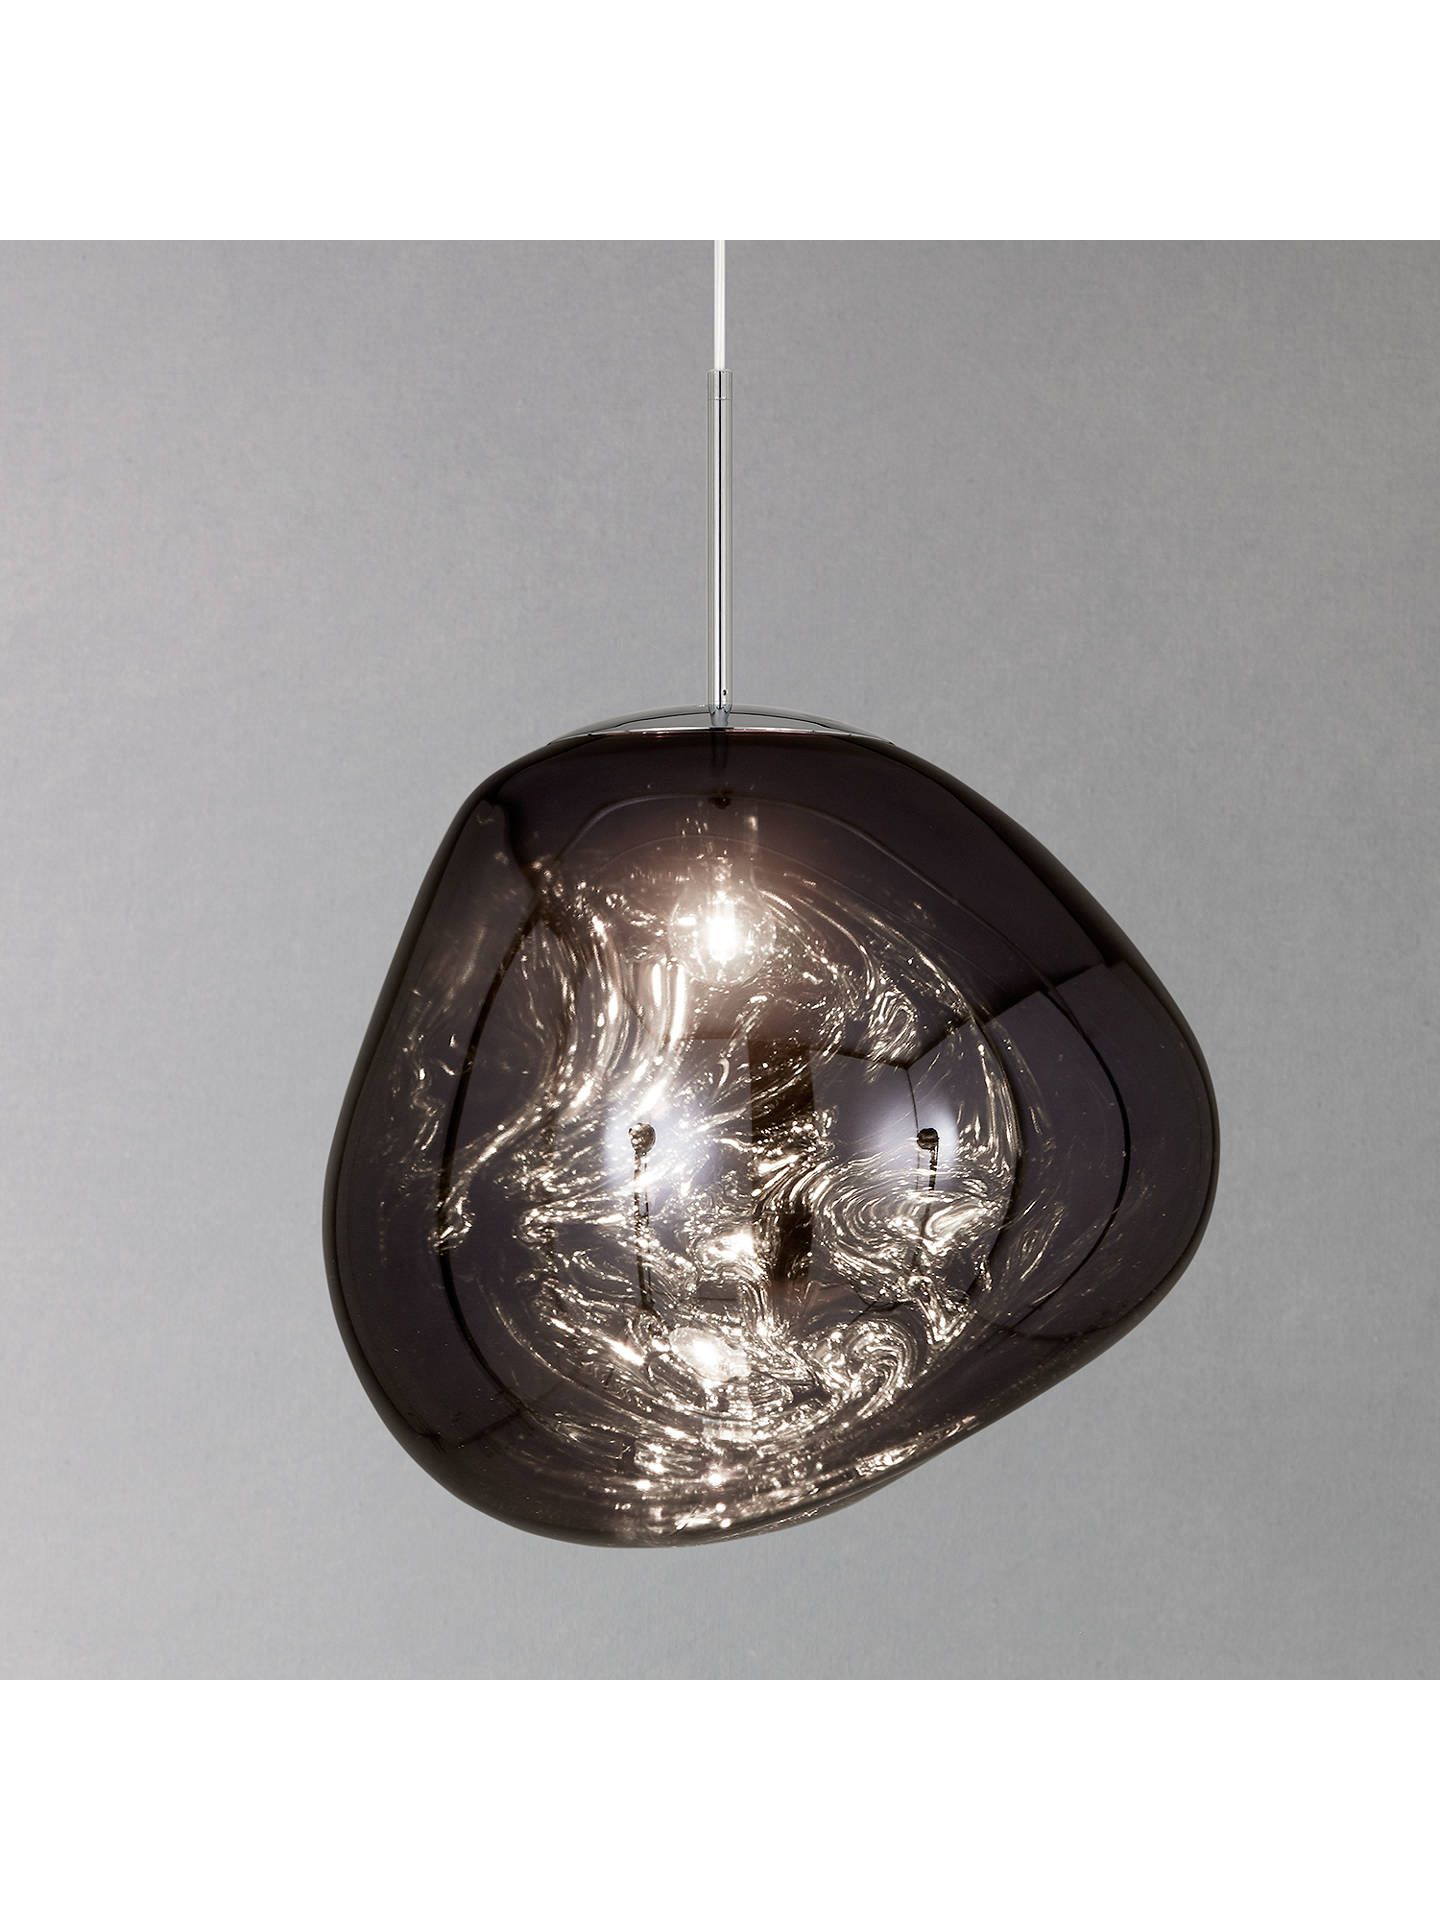 Tom Dixon Melt Mini Ceiling Light Copper Ceiling Lights Tom Dixon Melt Ceiling Pendant Lights